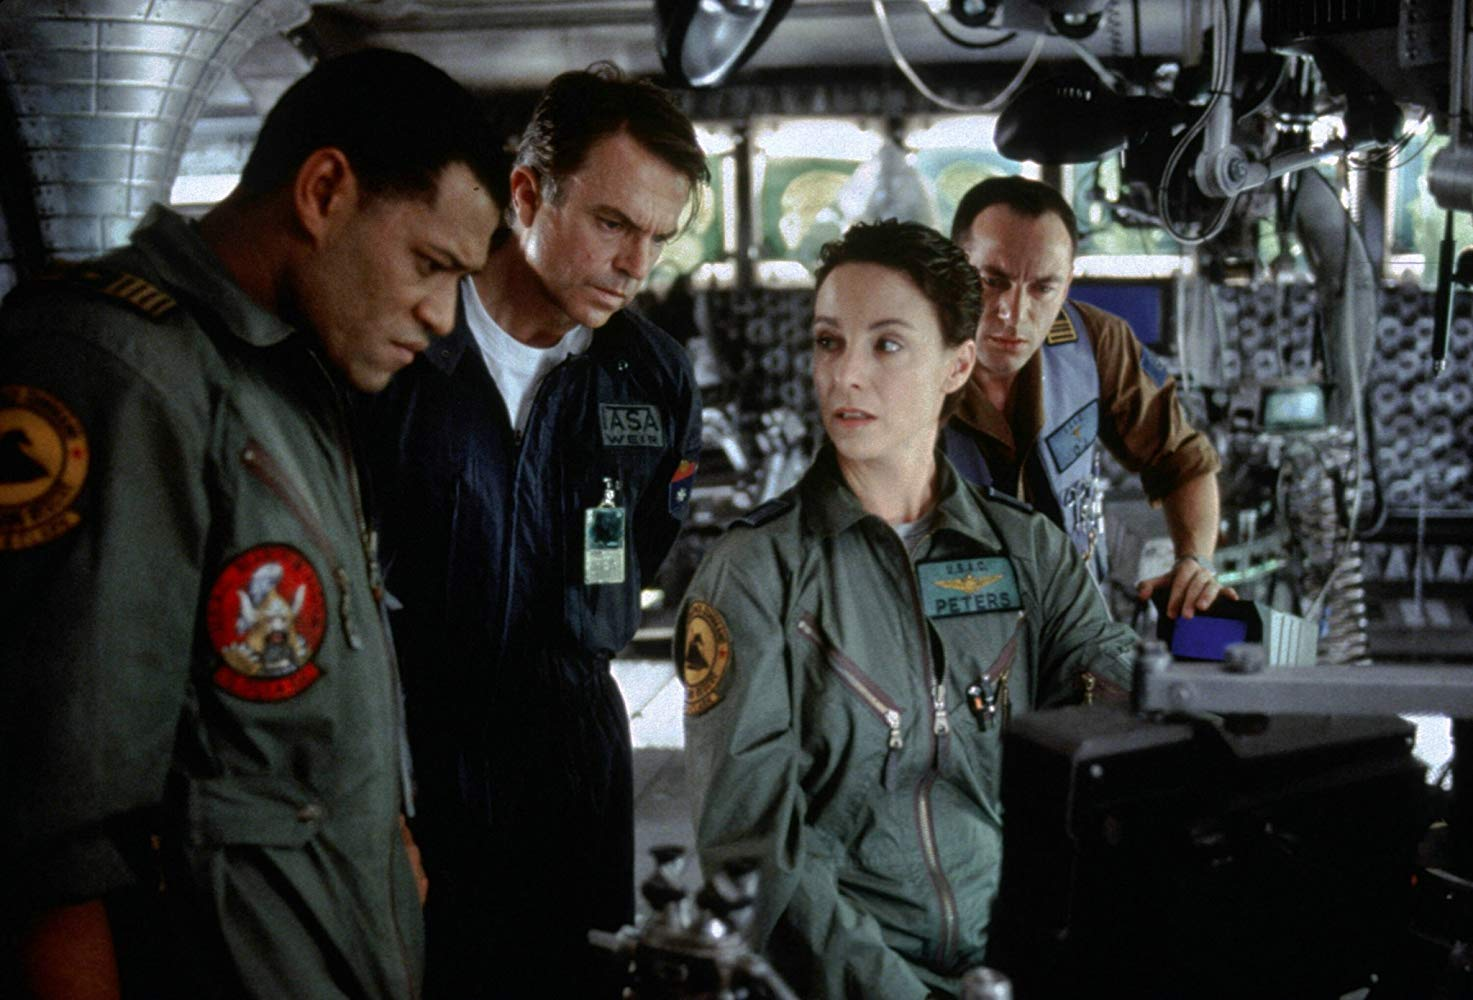 The crew of the Lewis and Clark - (l to r) Laurence Fishburne, Sam Neill, Kathleen Quinlan and Jason Isaacs in Event Horizon (1997)